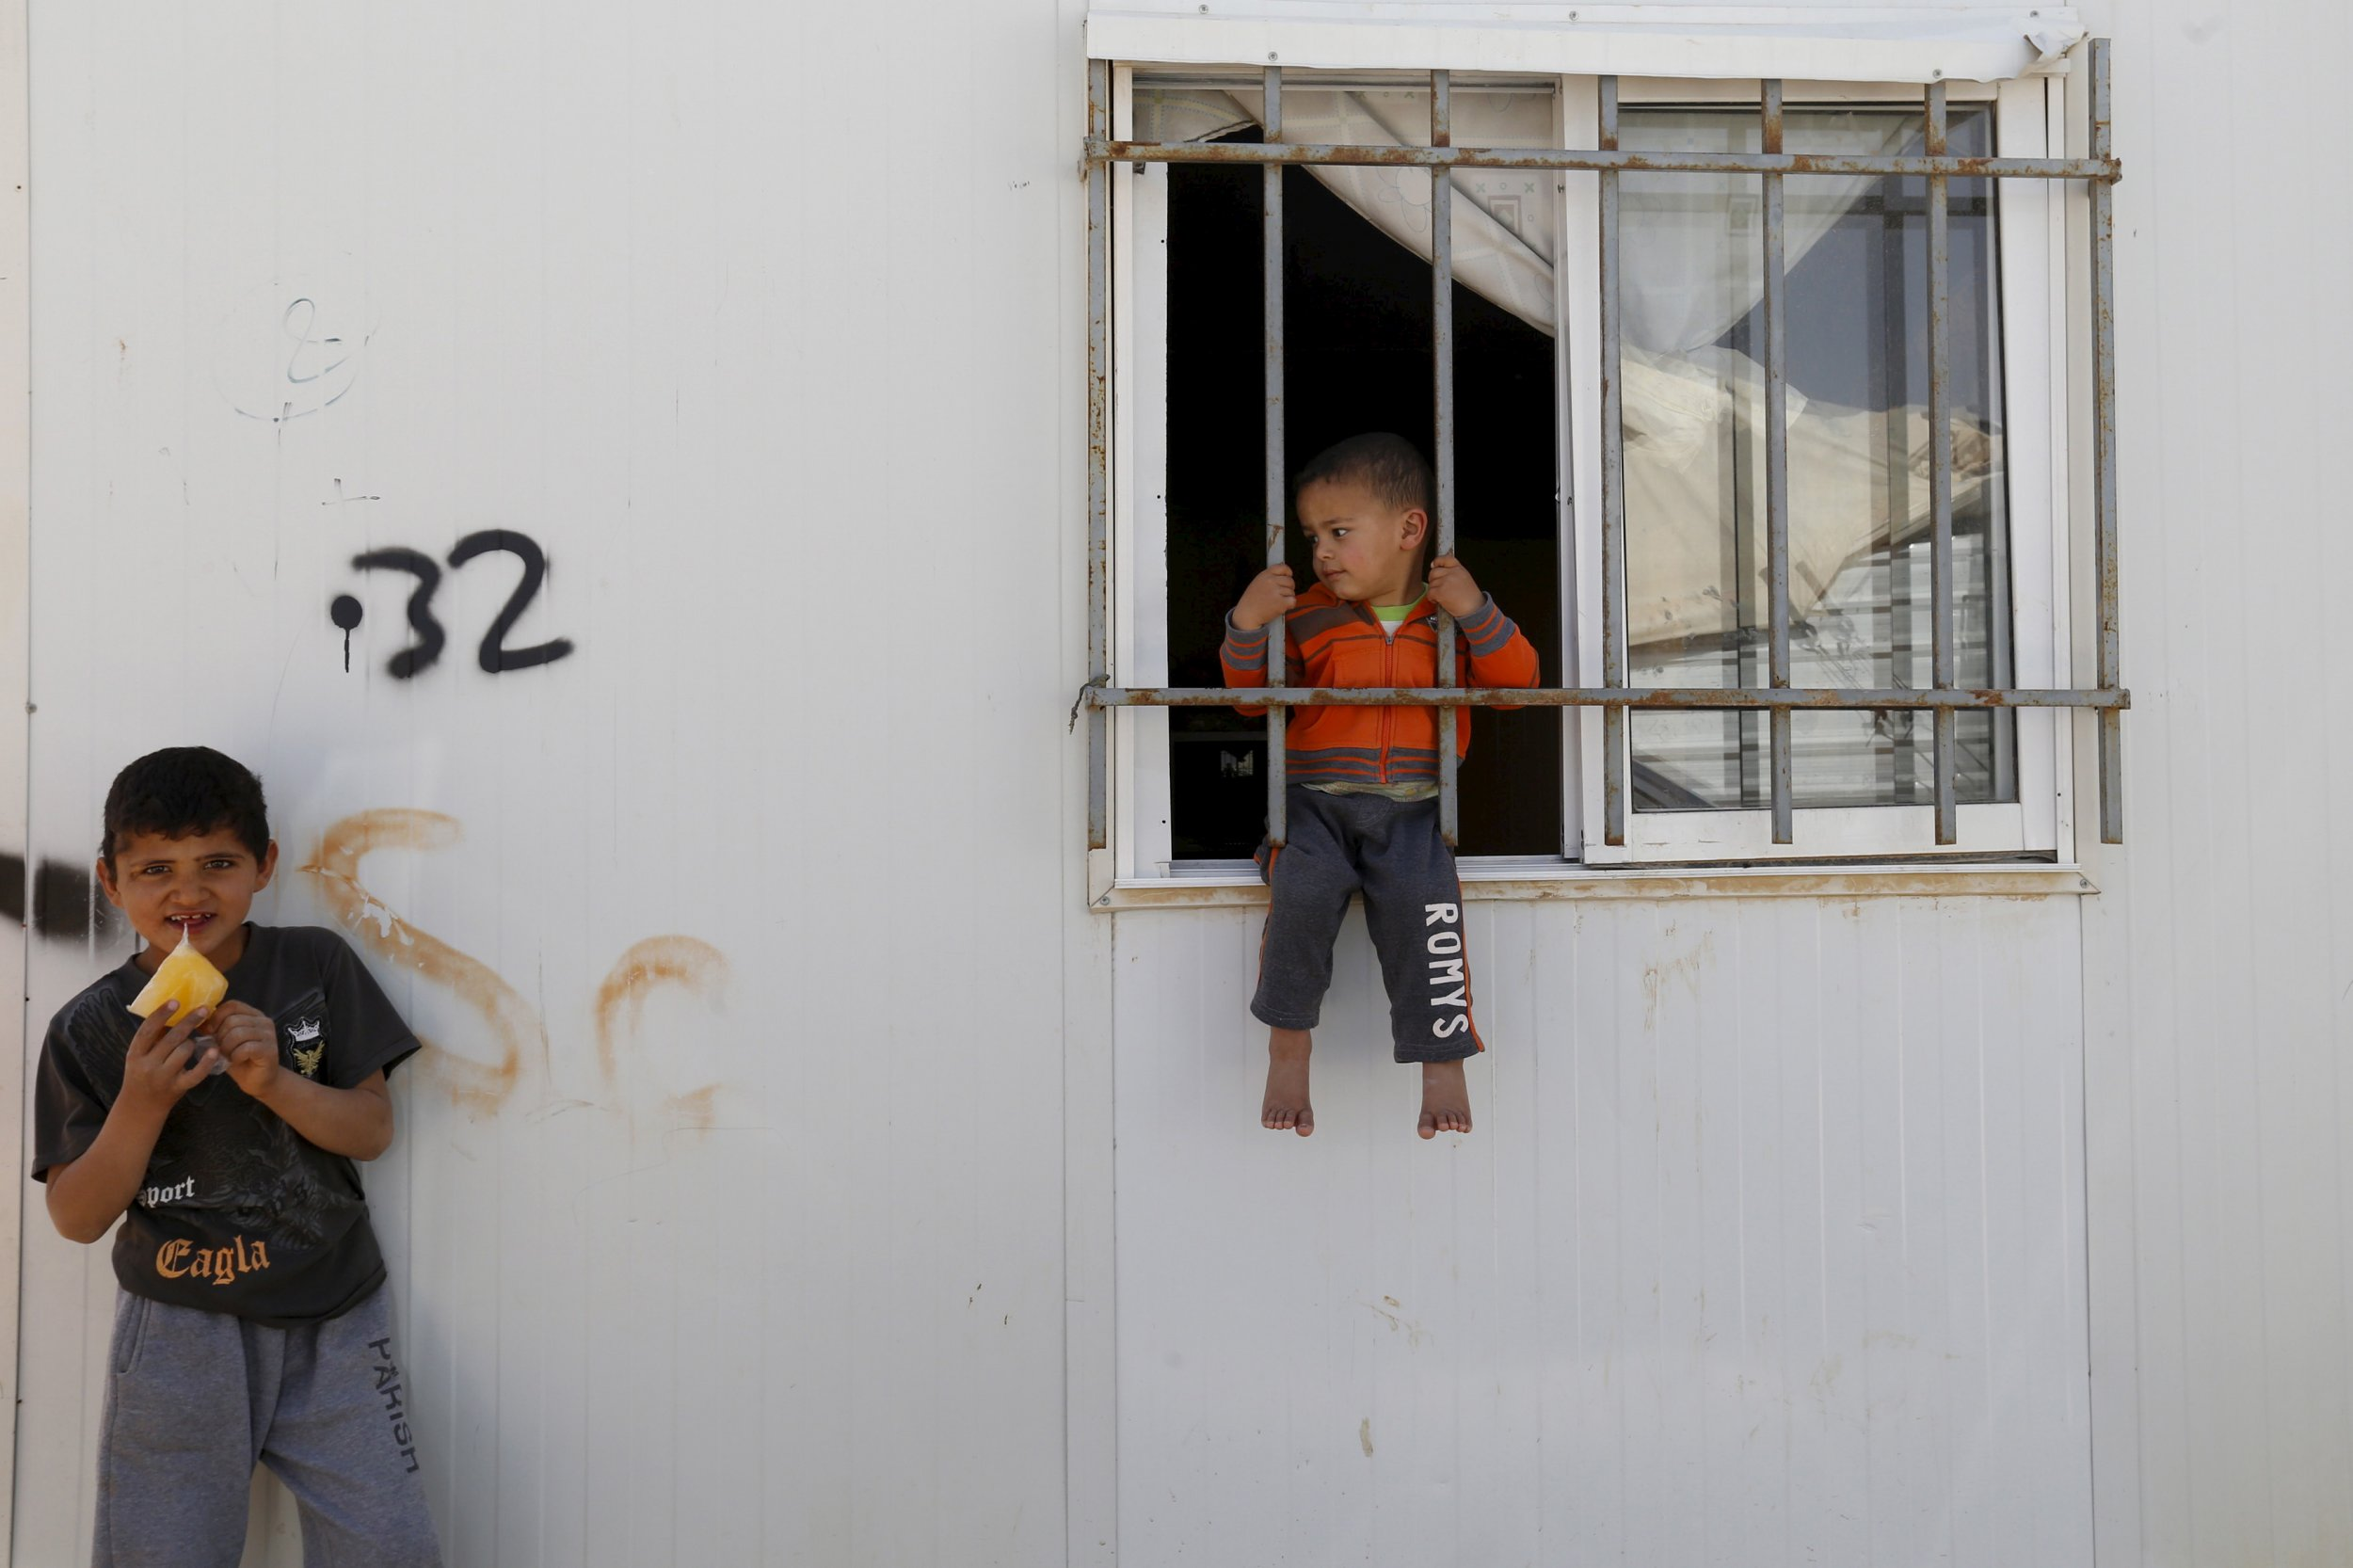 Syrian children in Al Zaatari refugee camp.